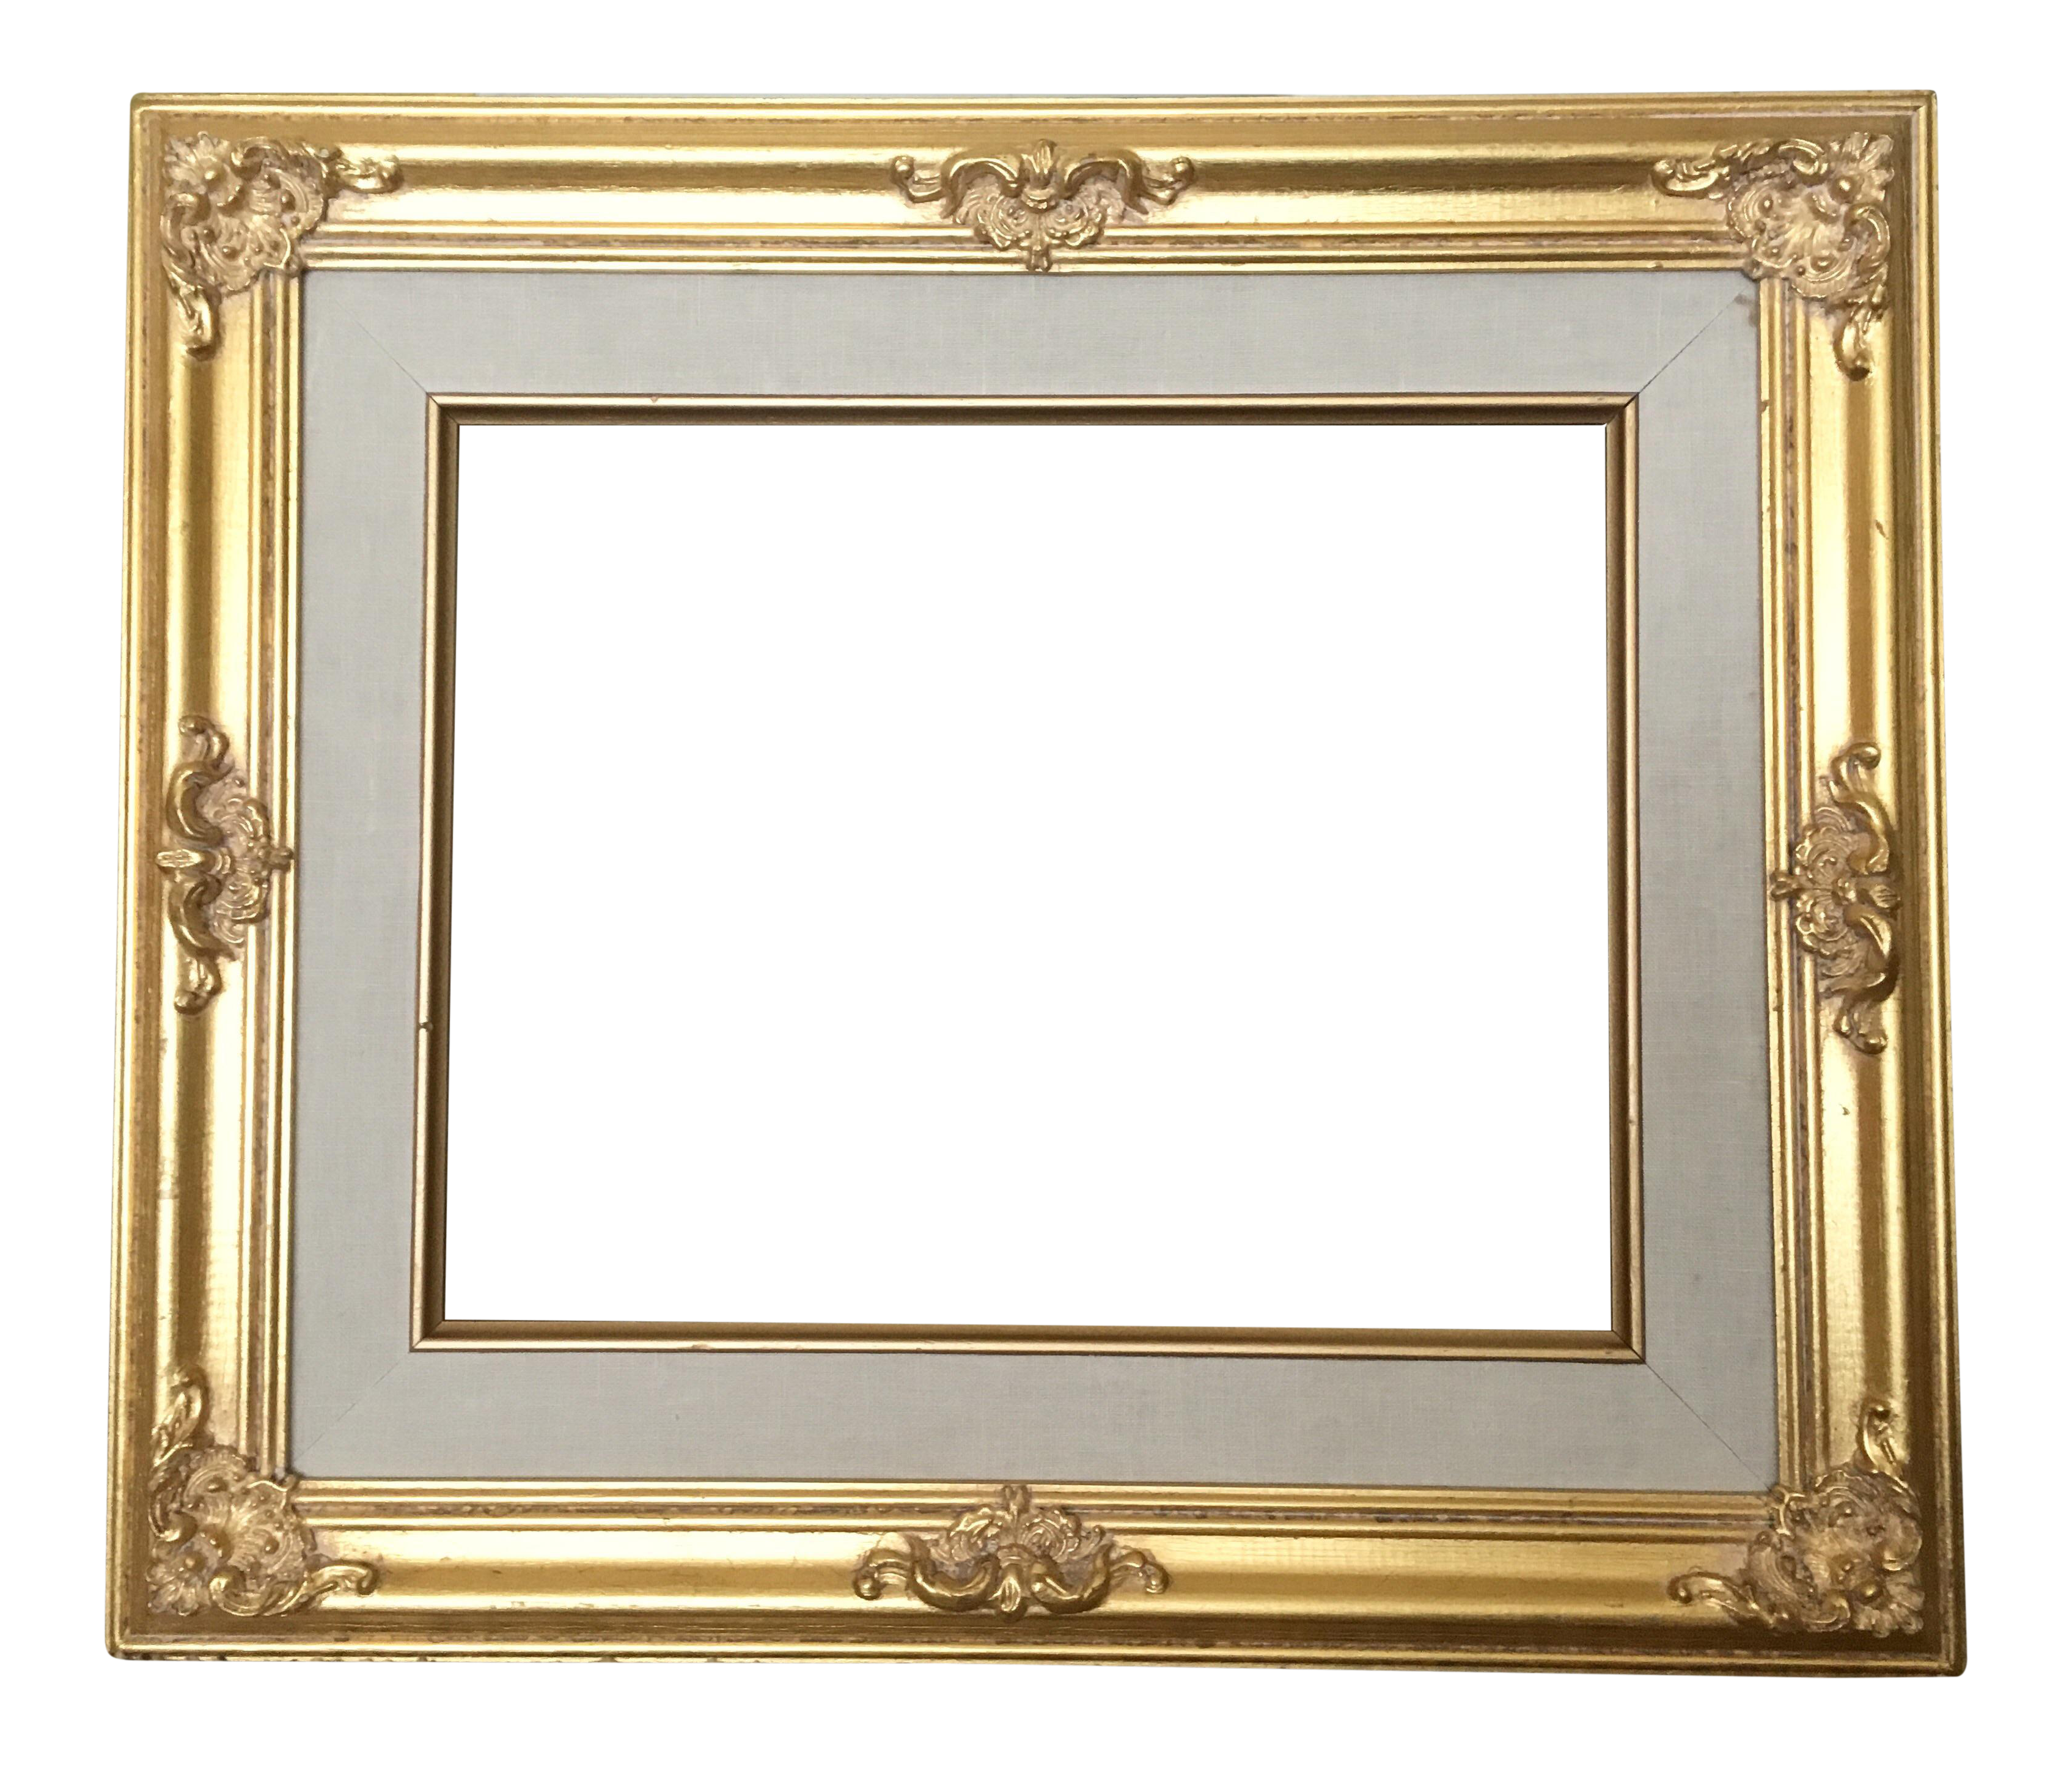 French gold chairish . Baroque frame png